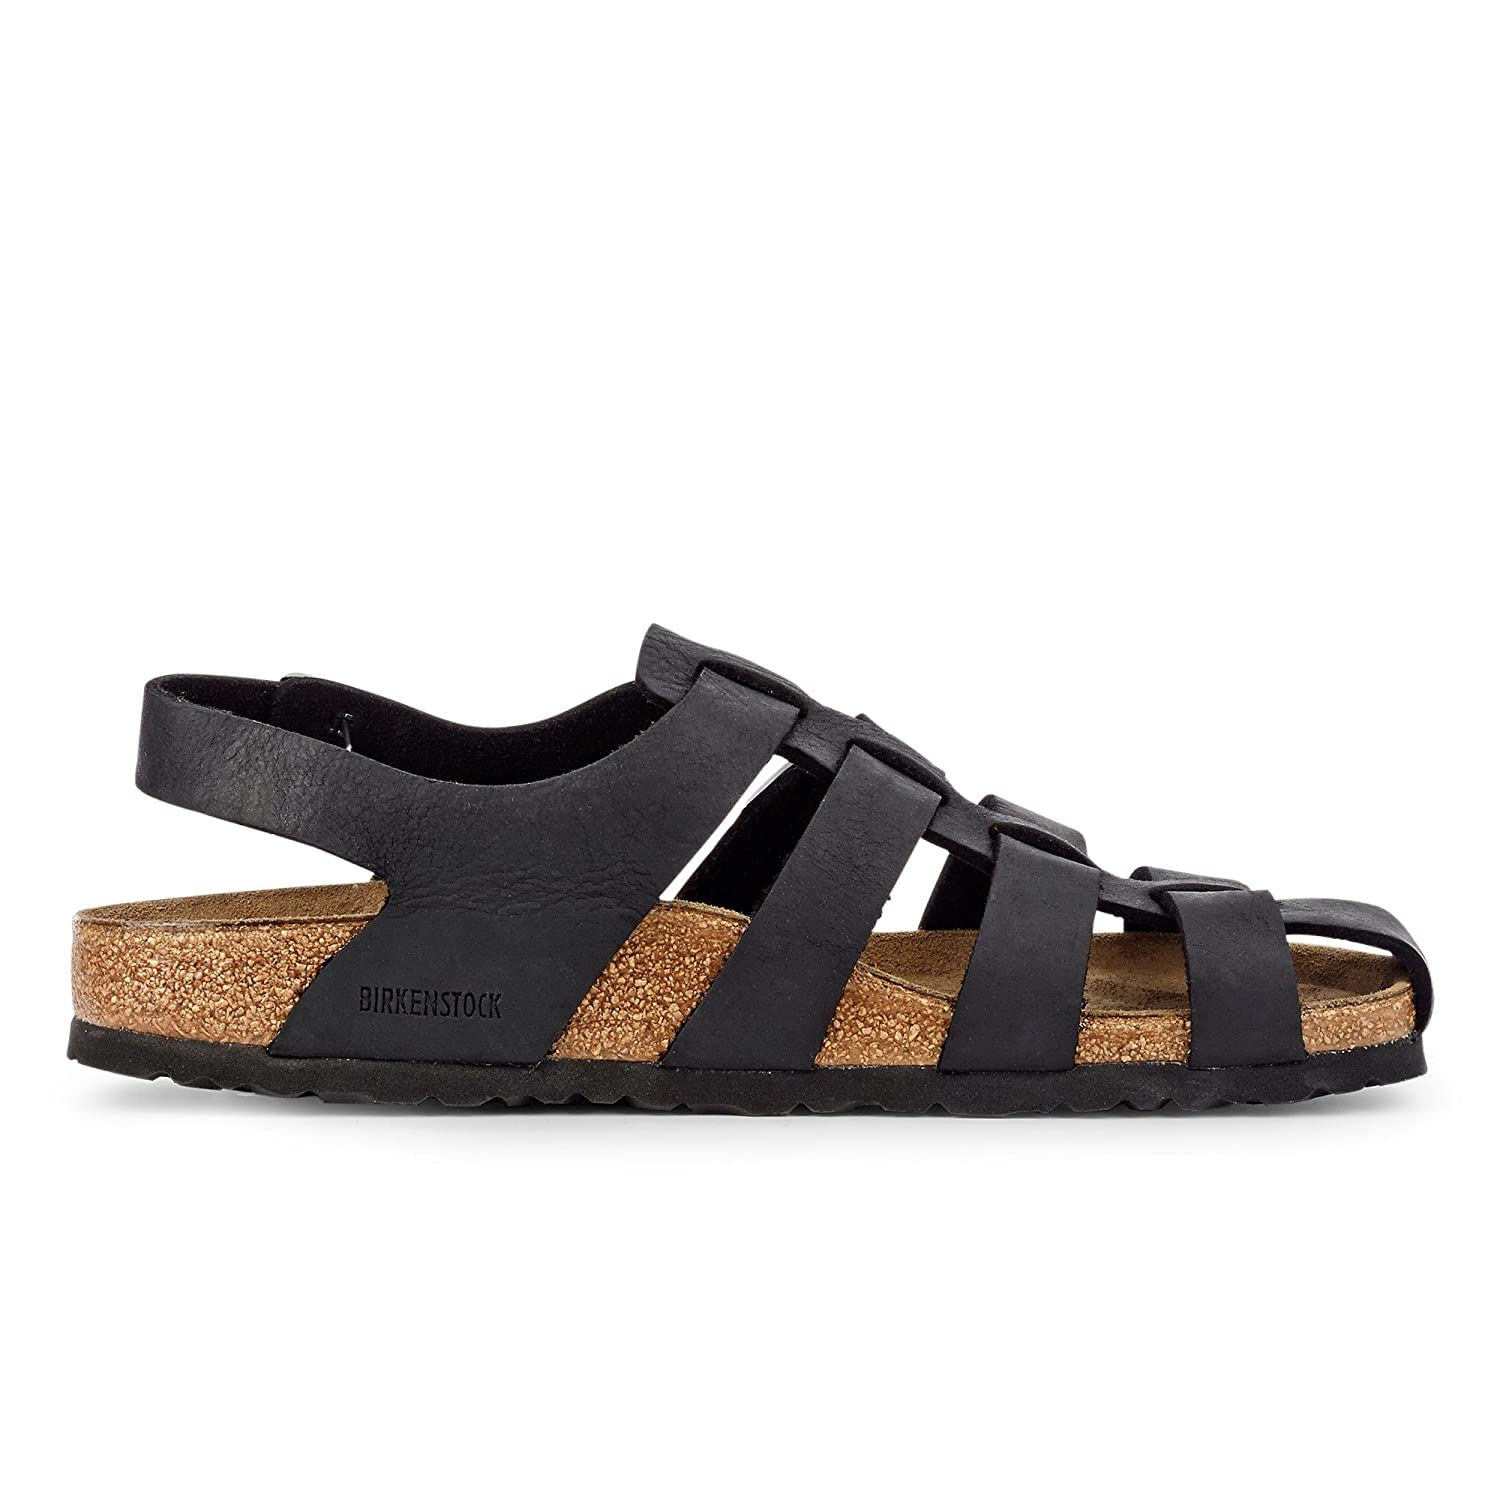 Birkenstock ZADAR - Sandals - camberra old black